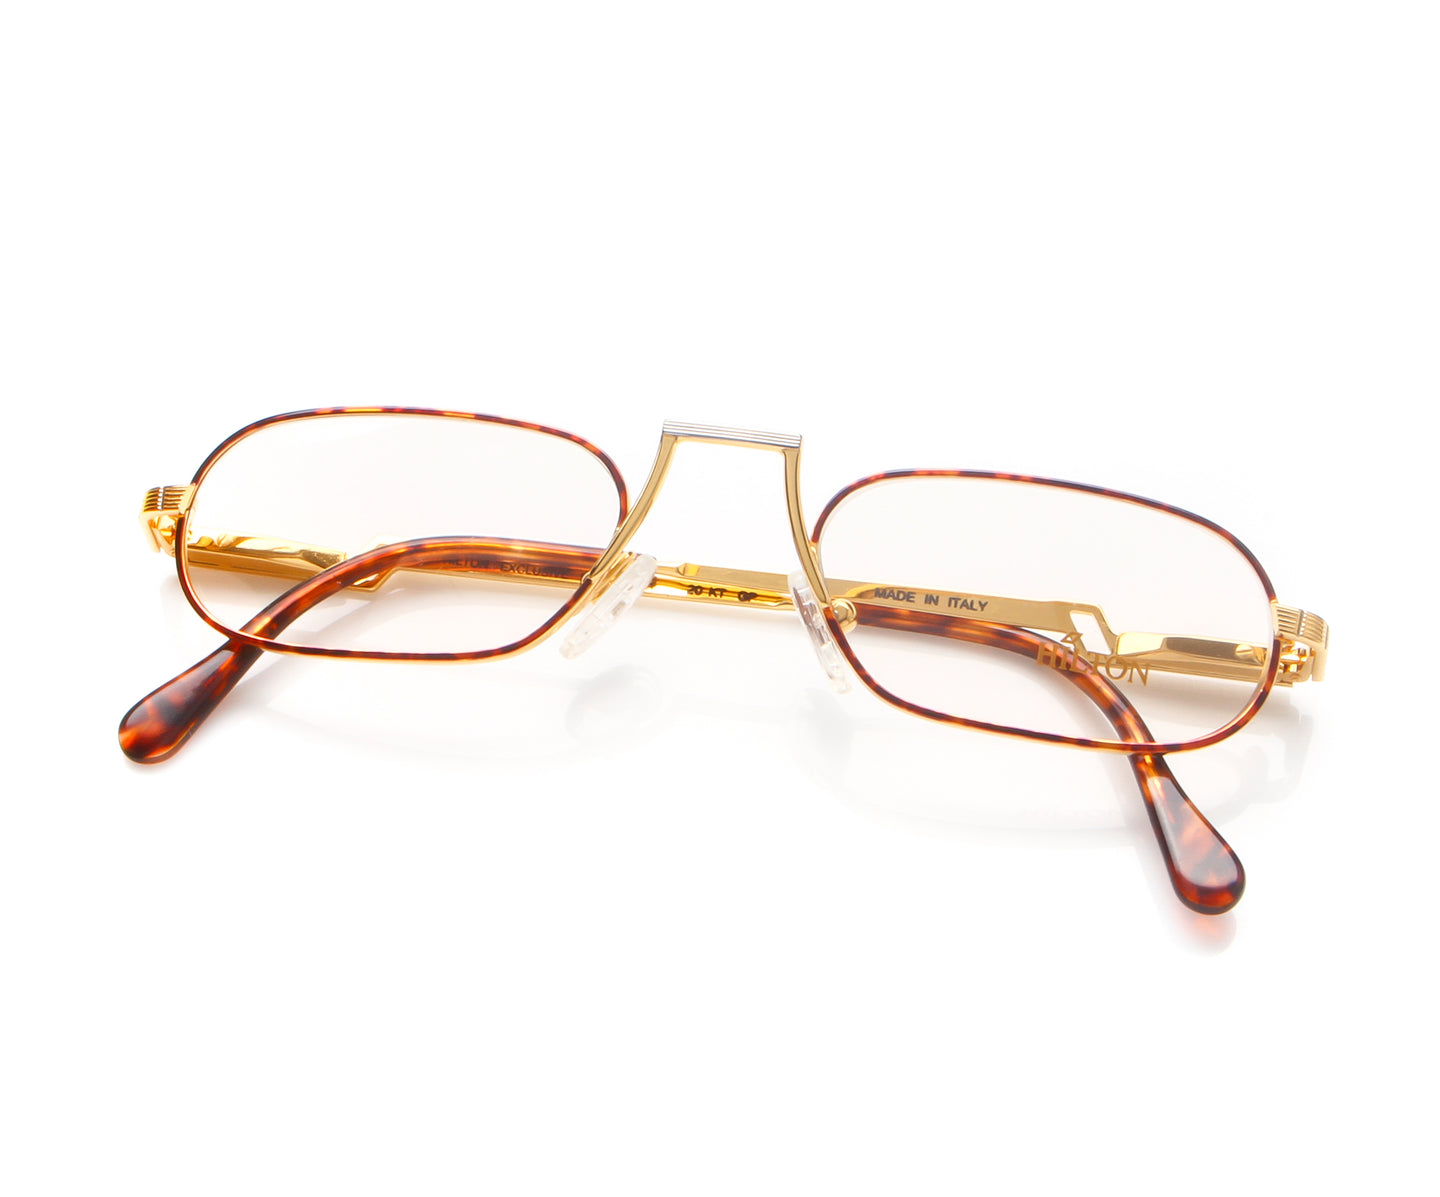 Vintage Hilton Exclusive 9 2 20KT GP Thumb, Hilton , glasses frames, eyeglasses online, eyeglass frames, mens glasses, womens glasses, buy glasses online, designer eyeglasses, vintage sunglasses, retro sunglasses, vintage glasses, sunglass, eyeglass, glasses, lens, vintage frames company, vf